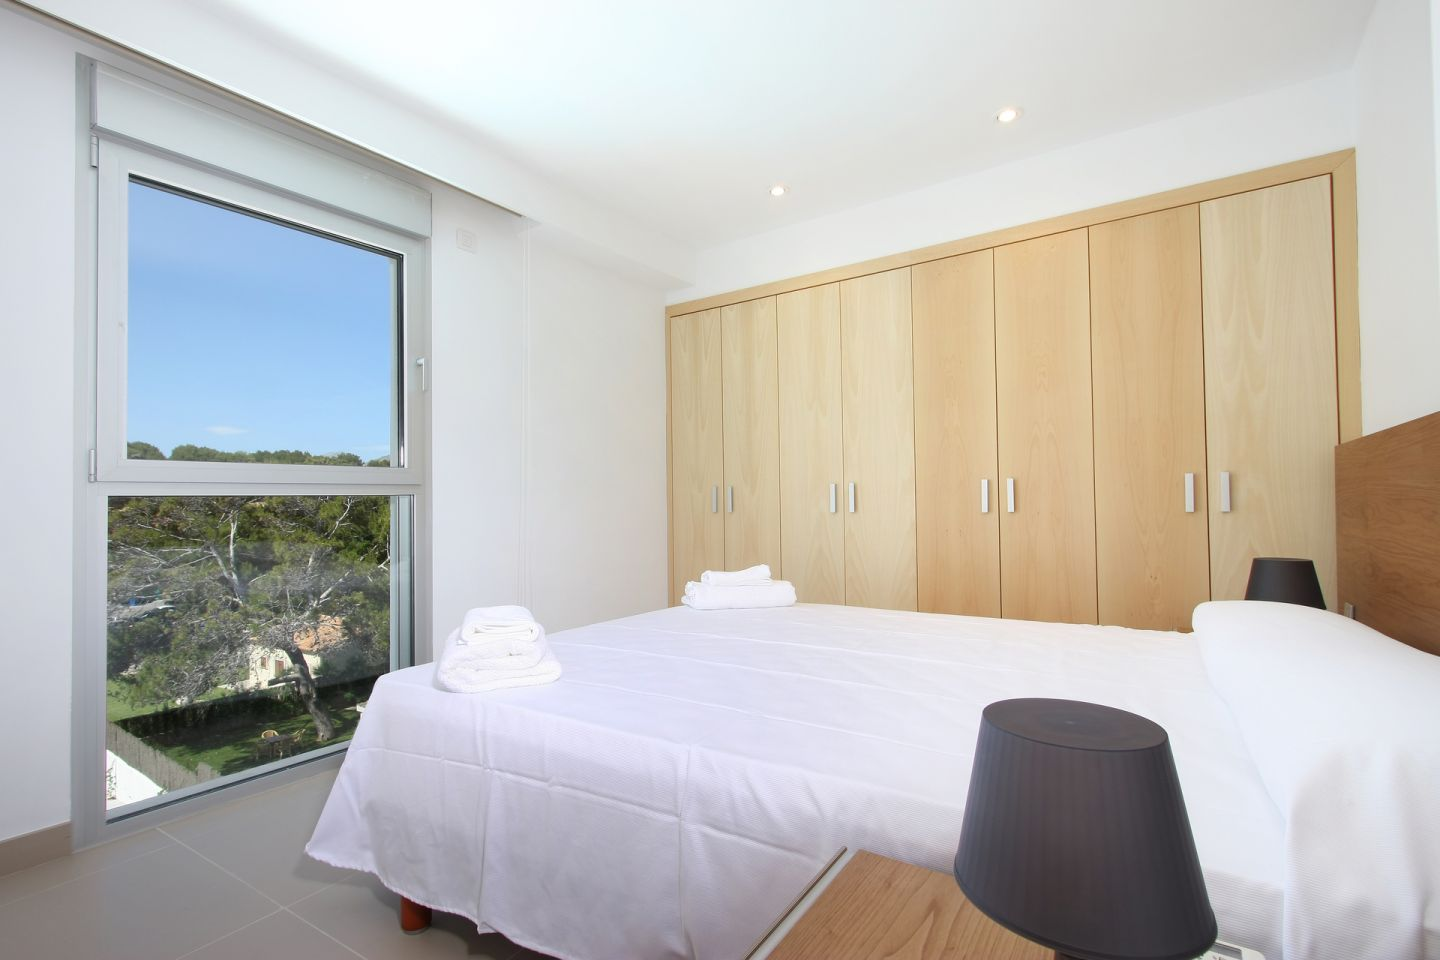 2 Bed Apartment for sale in Cala San Vicente 9